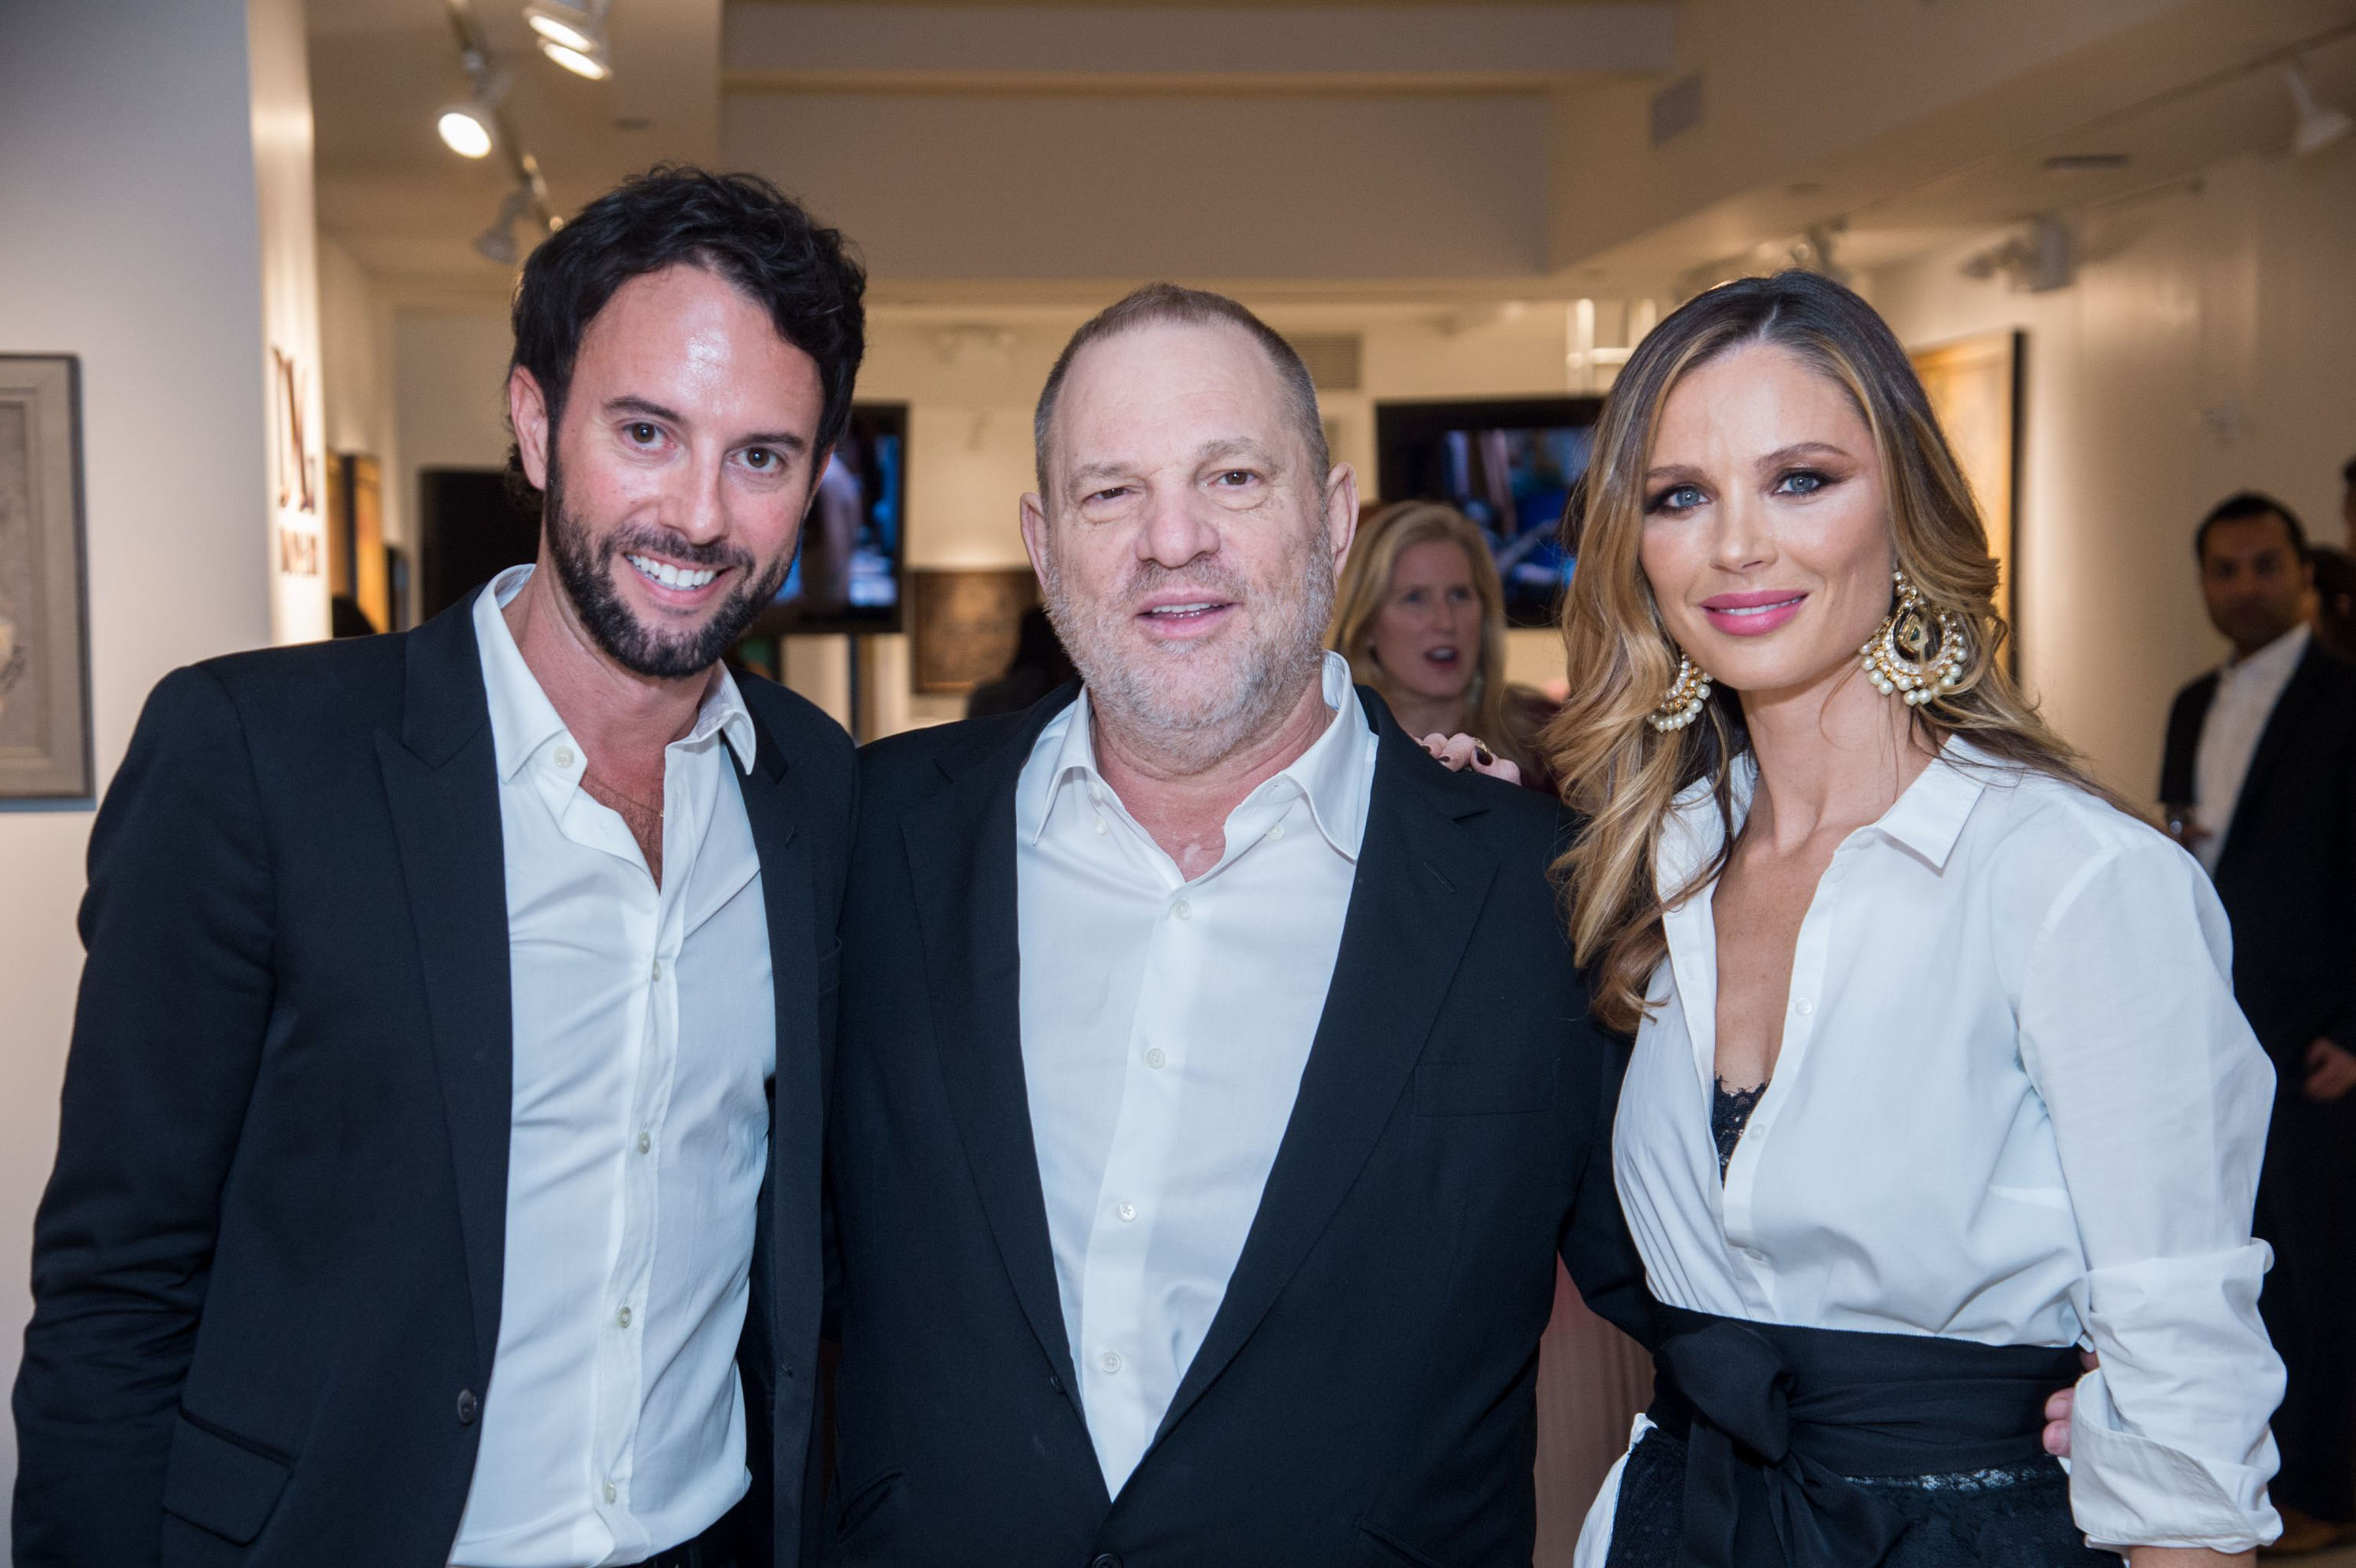 Justin Reeves, Harvey Weinstein and Georgina ChapmanMagic Bus Cocktail Party, New York, USA - 09 May 2017Georgina Chapman to host Cocktail party for Magic Bus